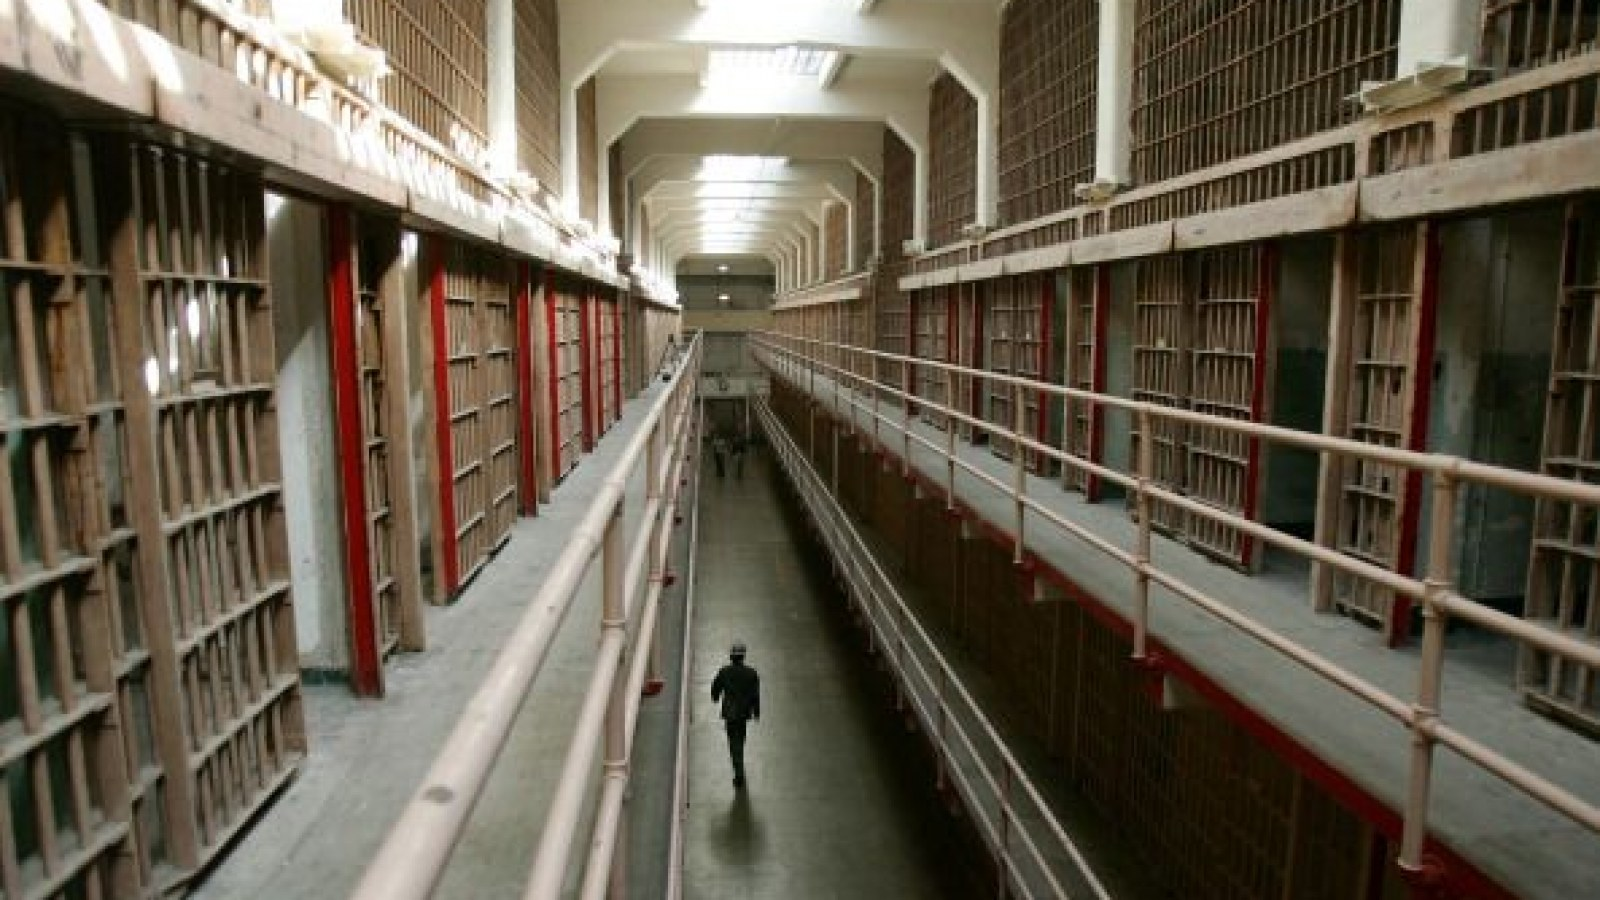 Grandmother Sues Jail After Being Booked into All-Male